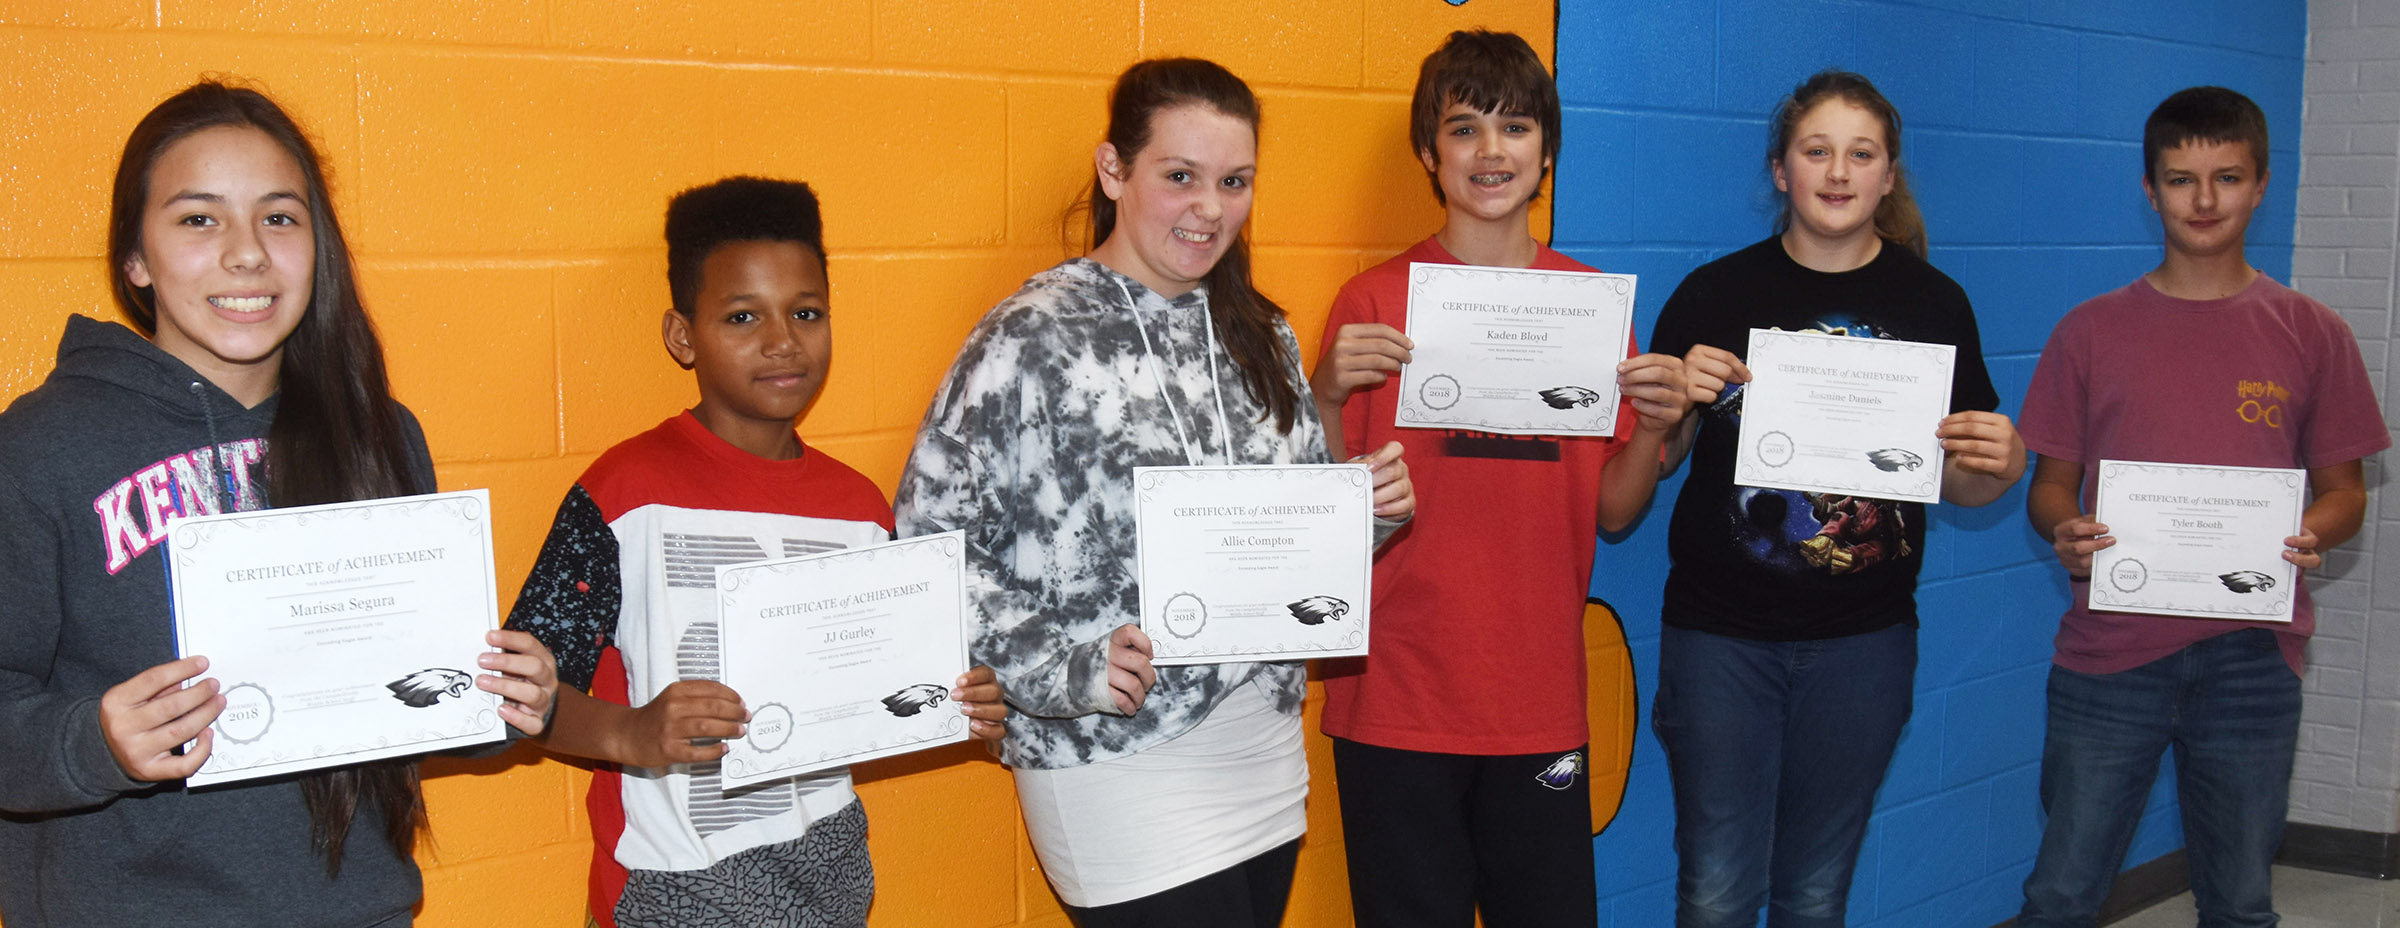 CMS Exceeding Eagles for the week of Nov. 5 are, from left, sixth-graders Marissa Segura and J.J. Gurley, seventh-graders Allie Compton and Kaden Bloyd and eighth-graders Jasmine Daniels and Tyler Booth.